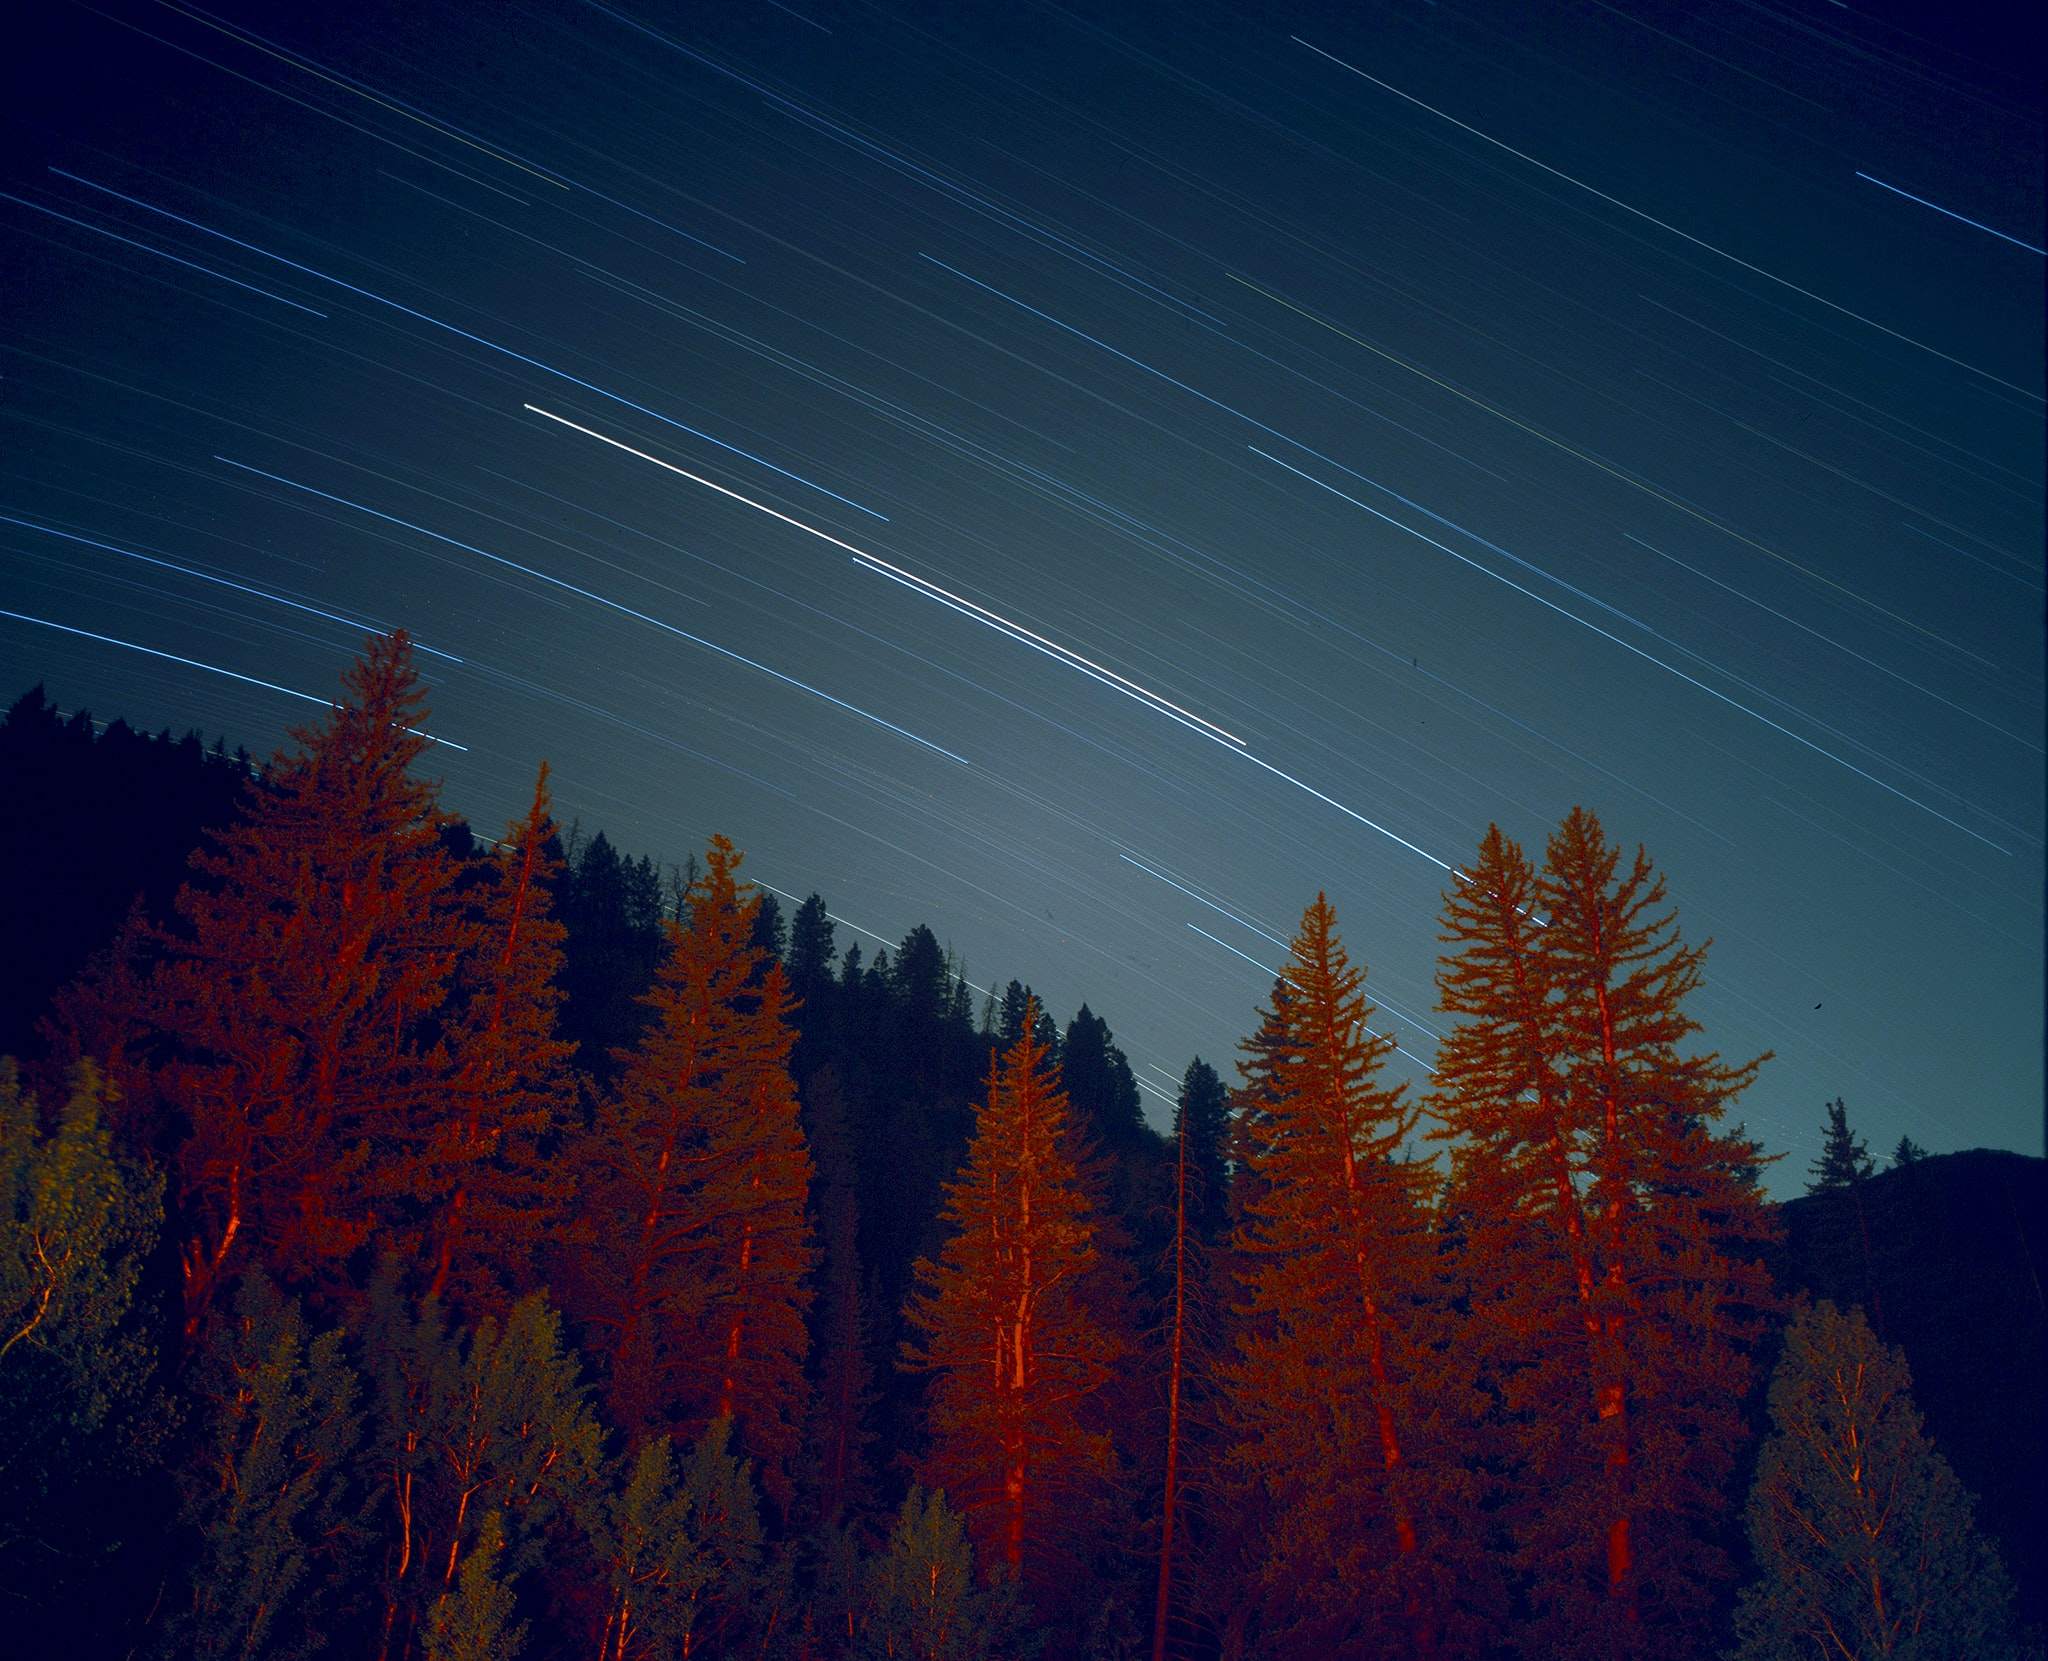 Red light on coniferous trees under straight lines formed by stars moving in the sky